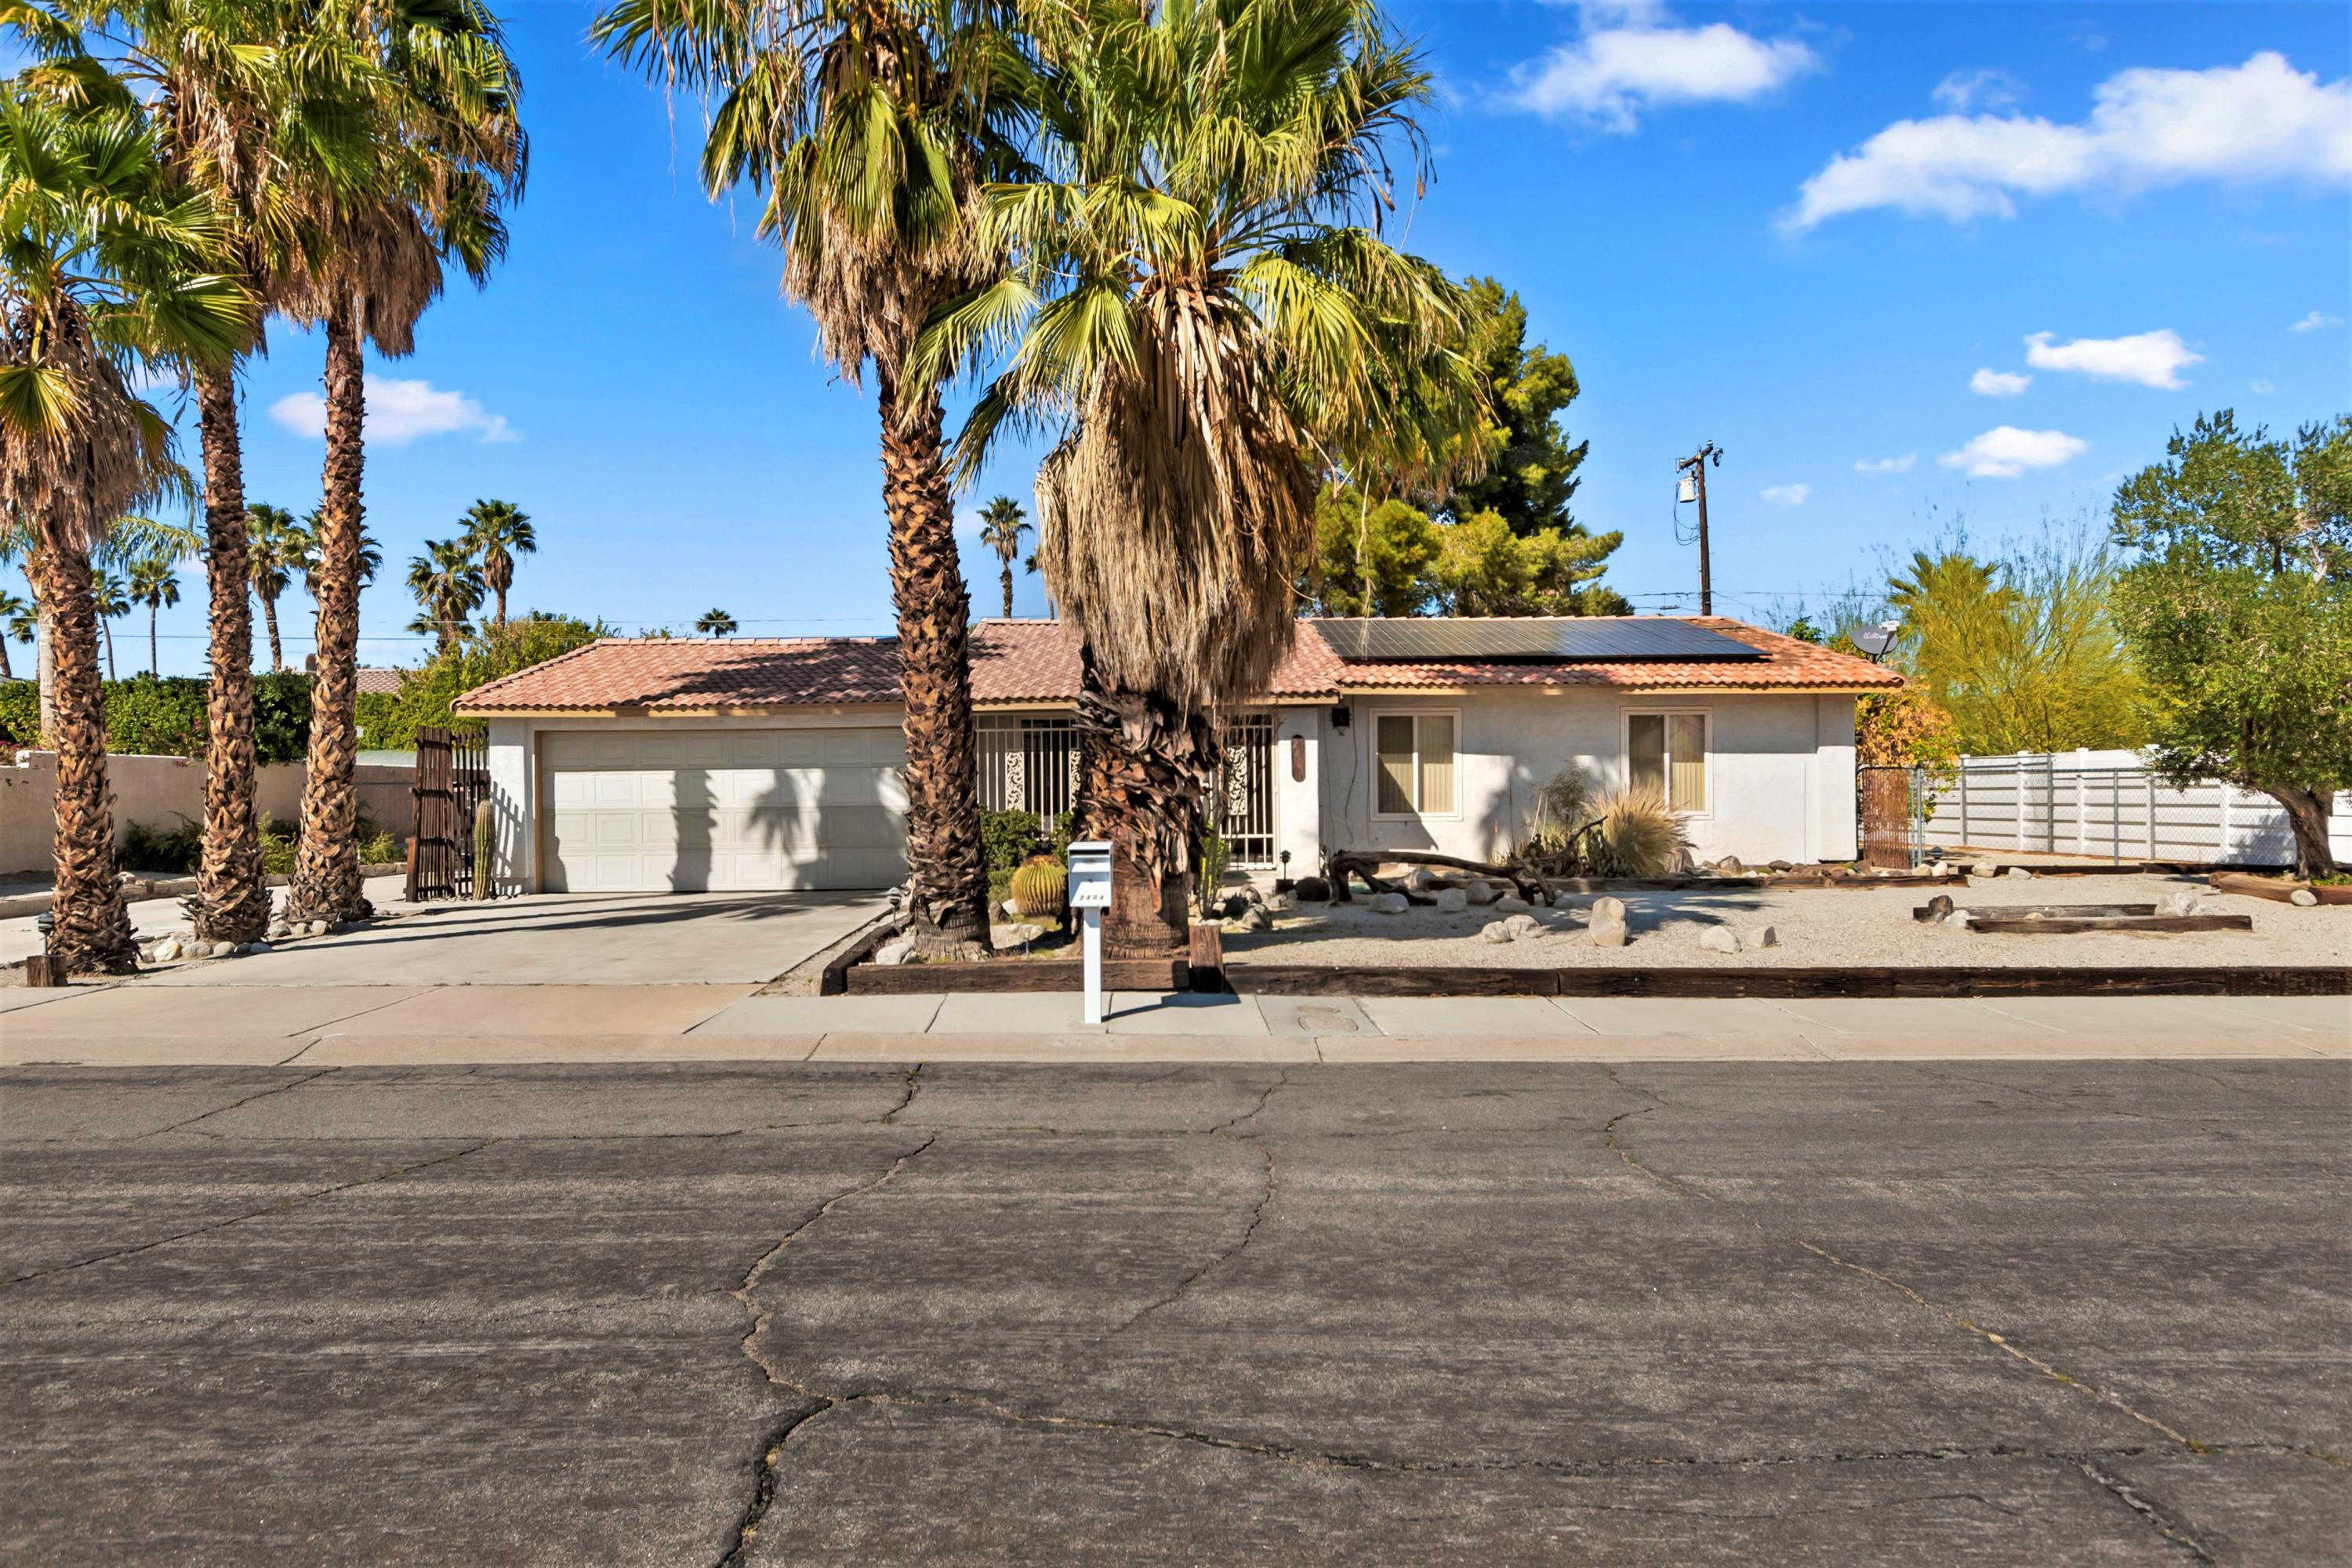 Great Investment Opportunity for Contractors! 4 bedroom 2 bath home in the desirable area of Desert Park Estates.  Located on a beautiful street in Palm Springs with gorgeous mountain views and located on a large lot.  RV parking, new double pane windows, enough front parking for 5 cars, a commercial water softener and a PAID FOR/OWNED SOLAR!